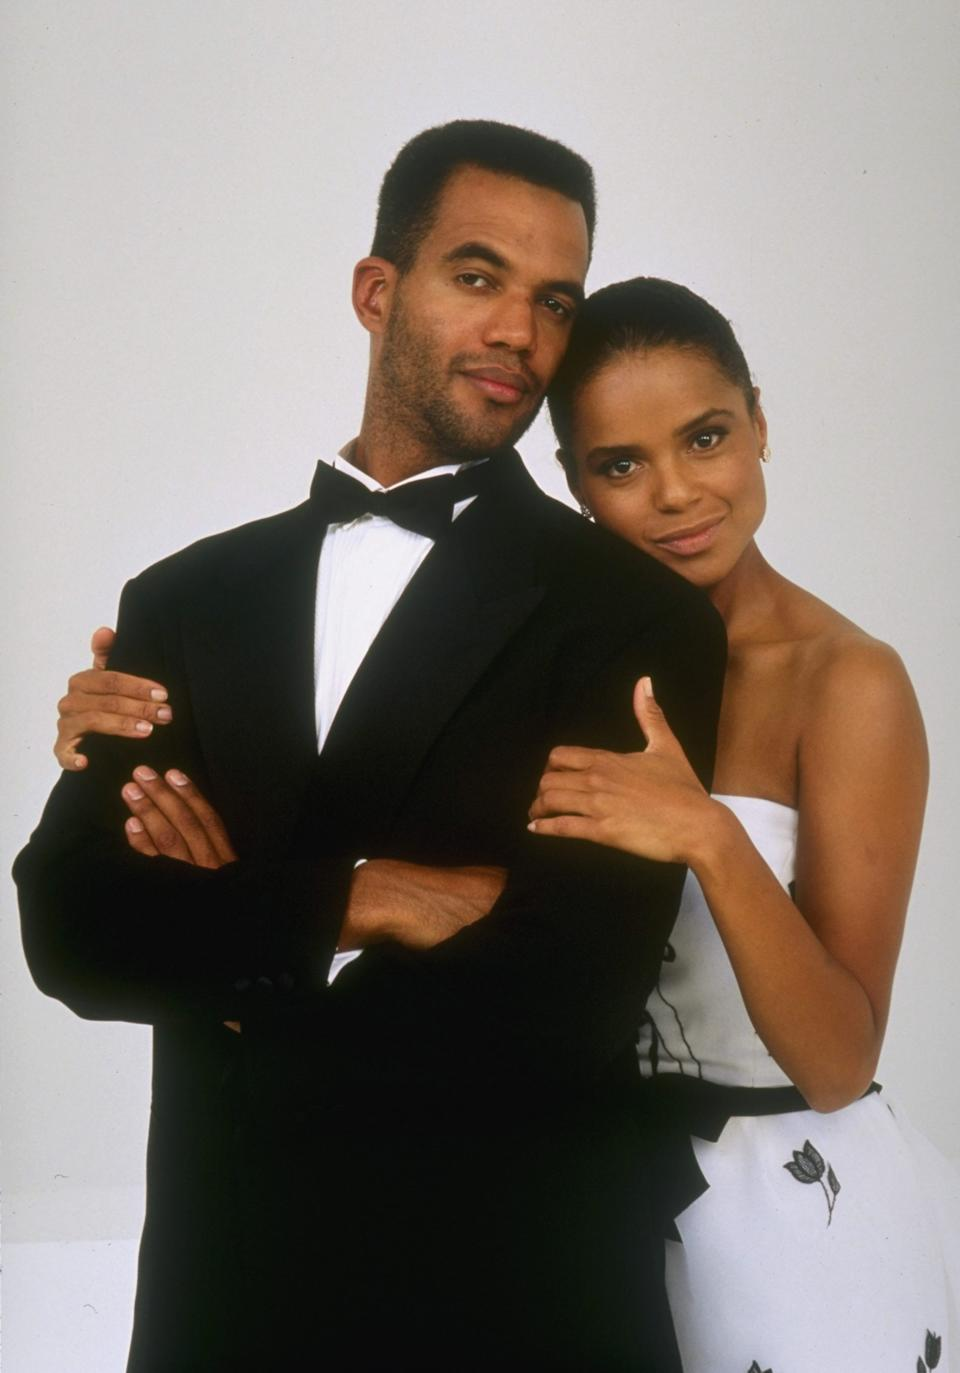 LOS ANGELES - JANUARY 1: Kristoff St. John (left, as Neil Winters) and Victoria Rowell (right, as Drucilla Barber Winters) star in THE YOUNG AND THE RESTLESS. January 1, 1997. (Photo by Monty Brinton/CBS via Getty Images)